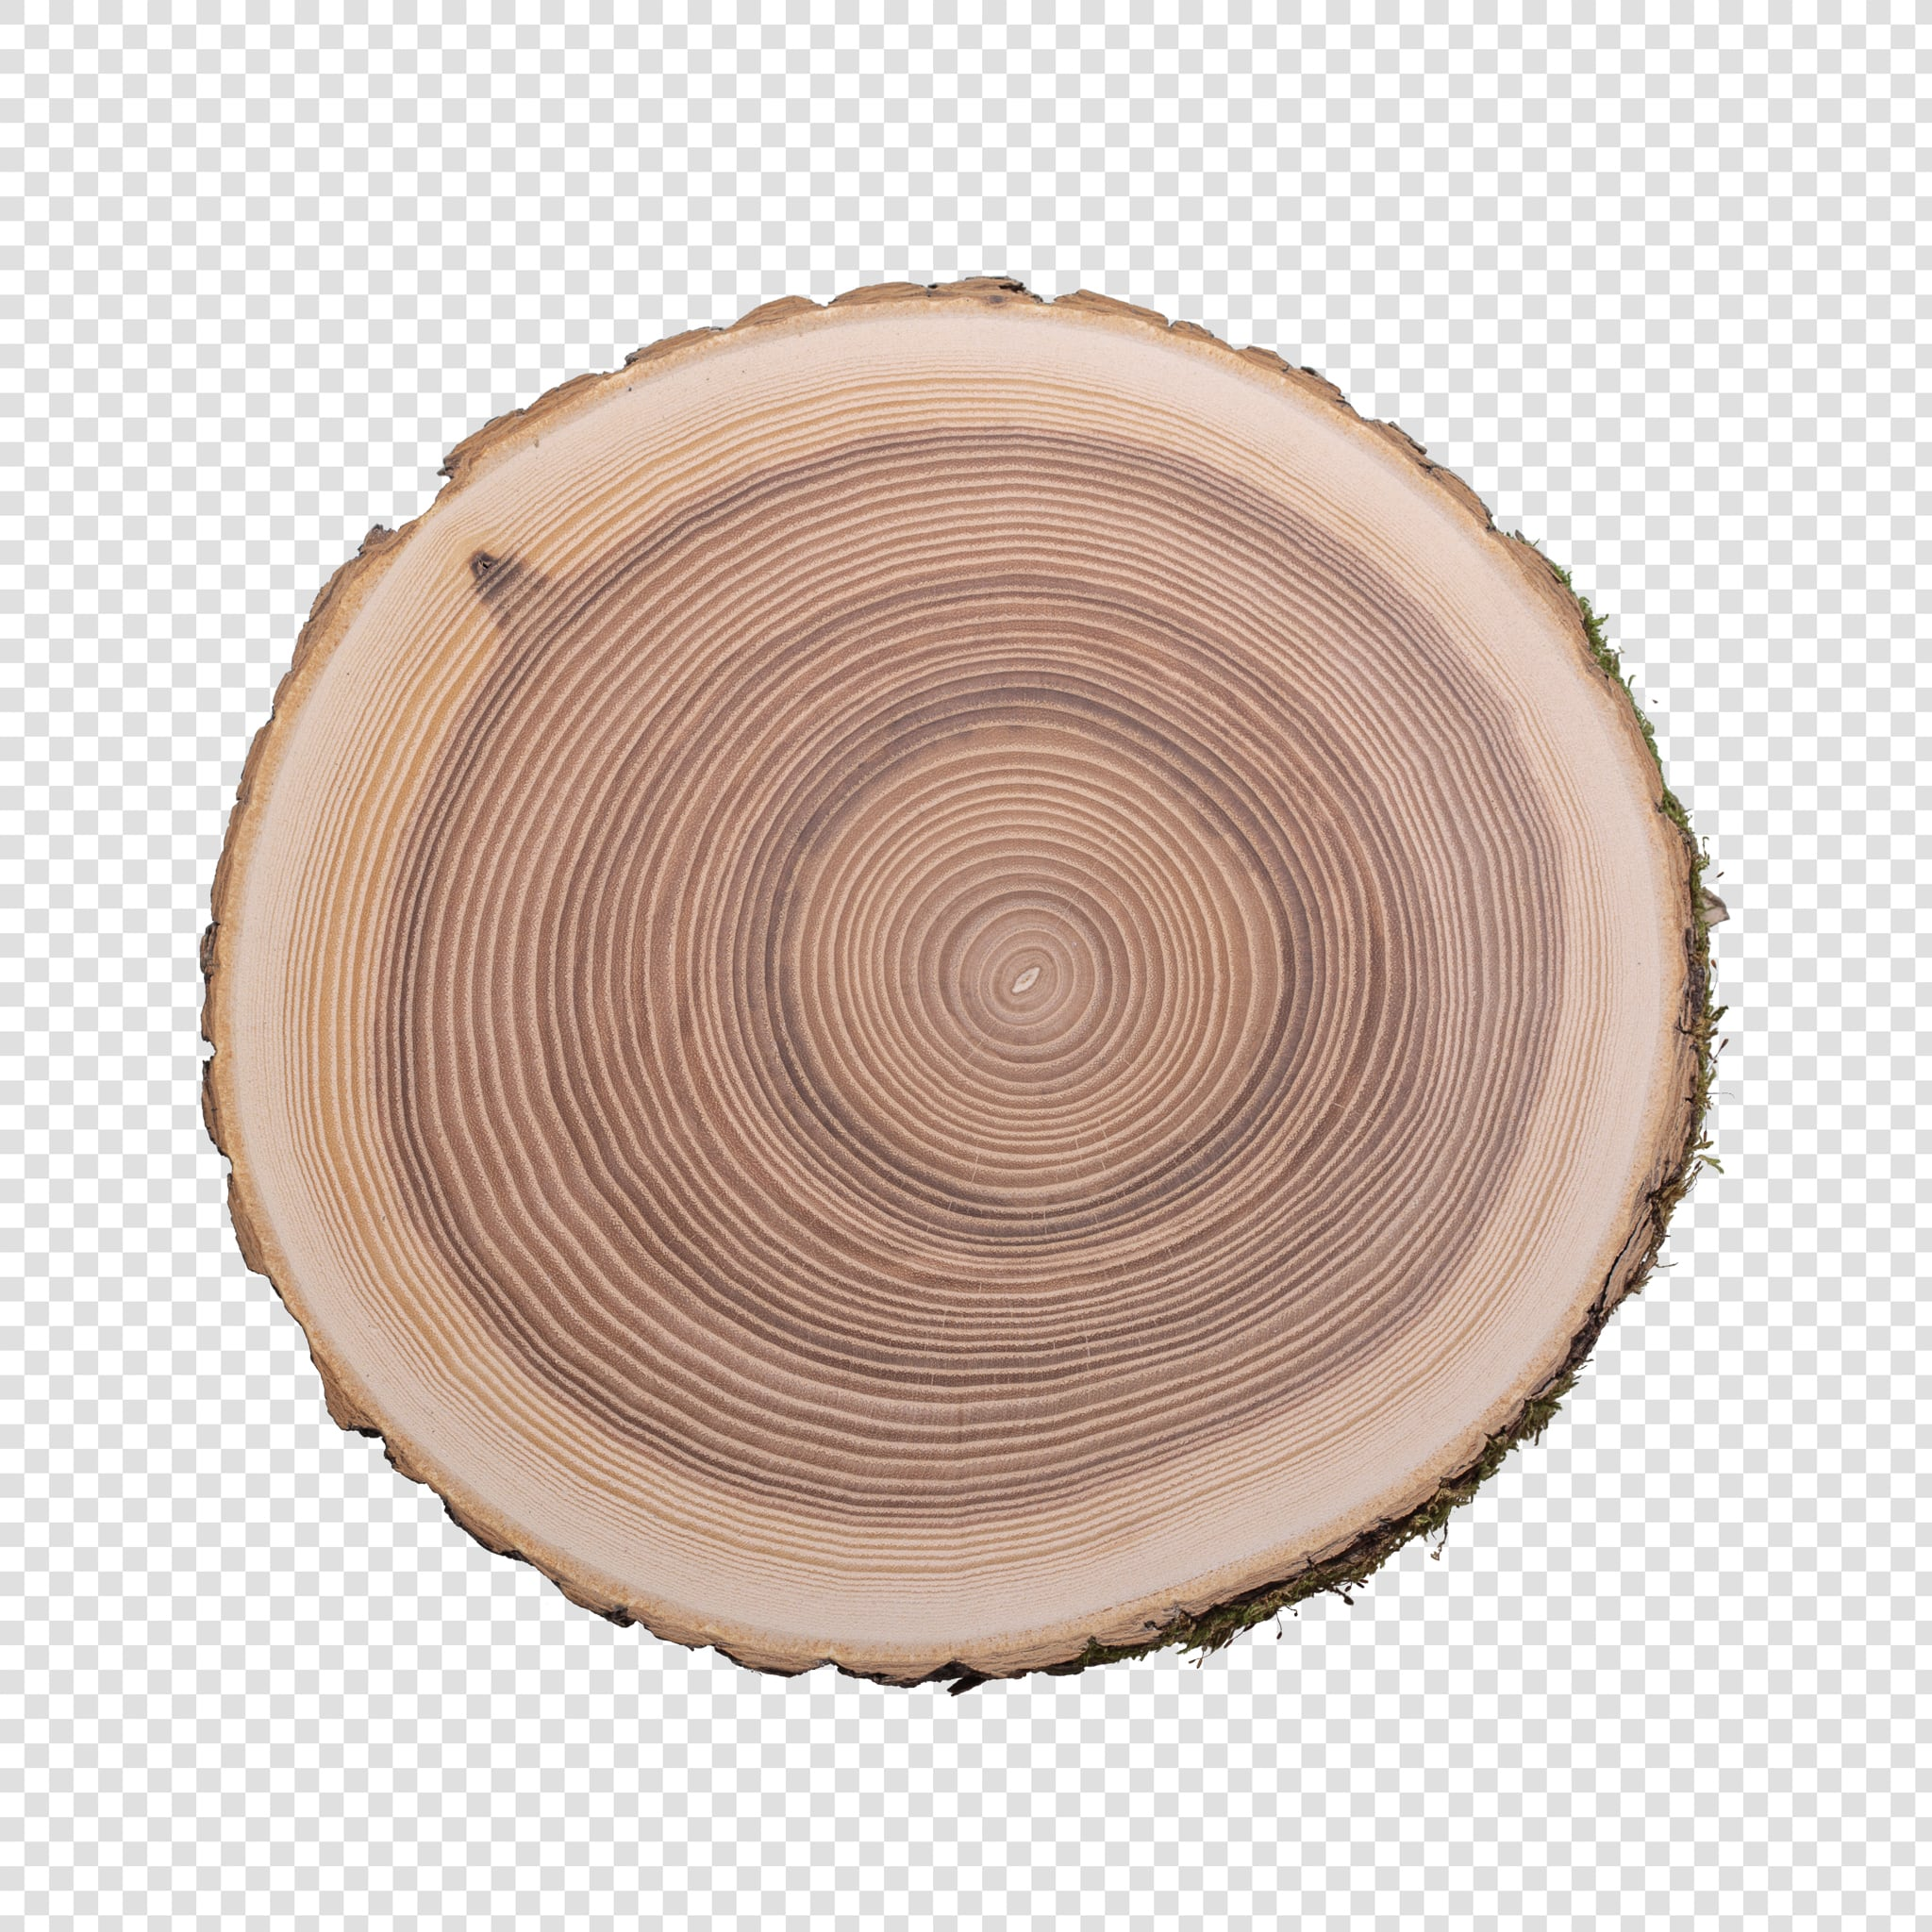 Craft image with transparent background